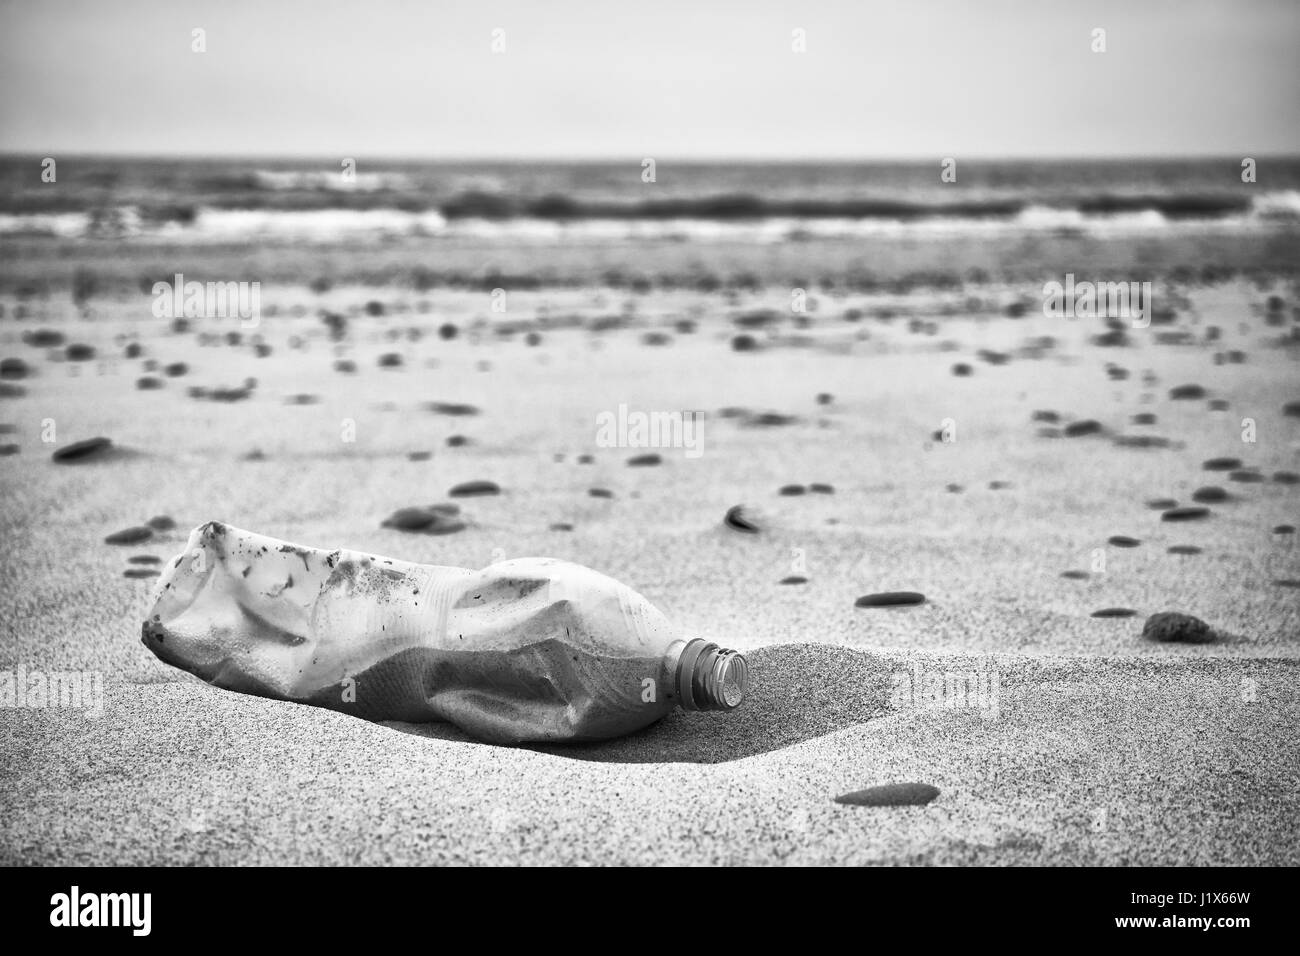 Black and white picture of an empty plastic bottle left on a beach, selective focus, environmental pollution concept - Stock Image